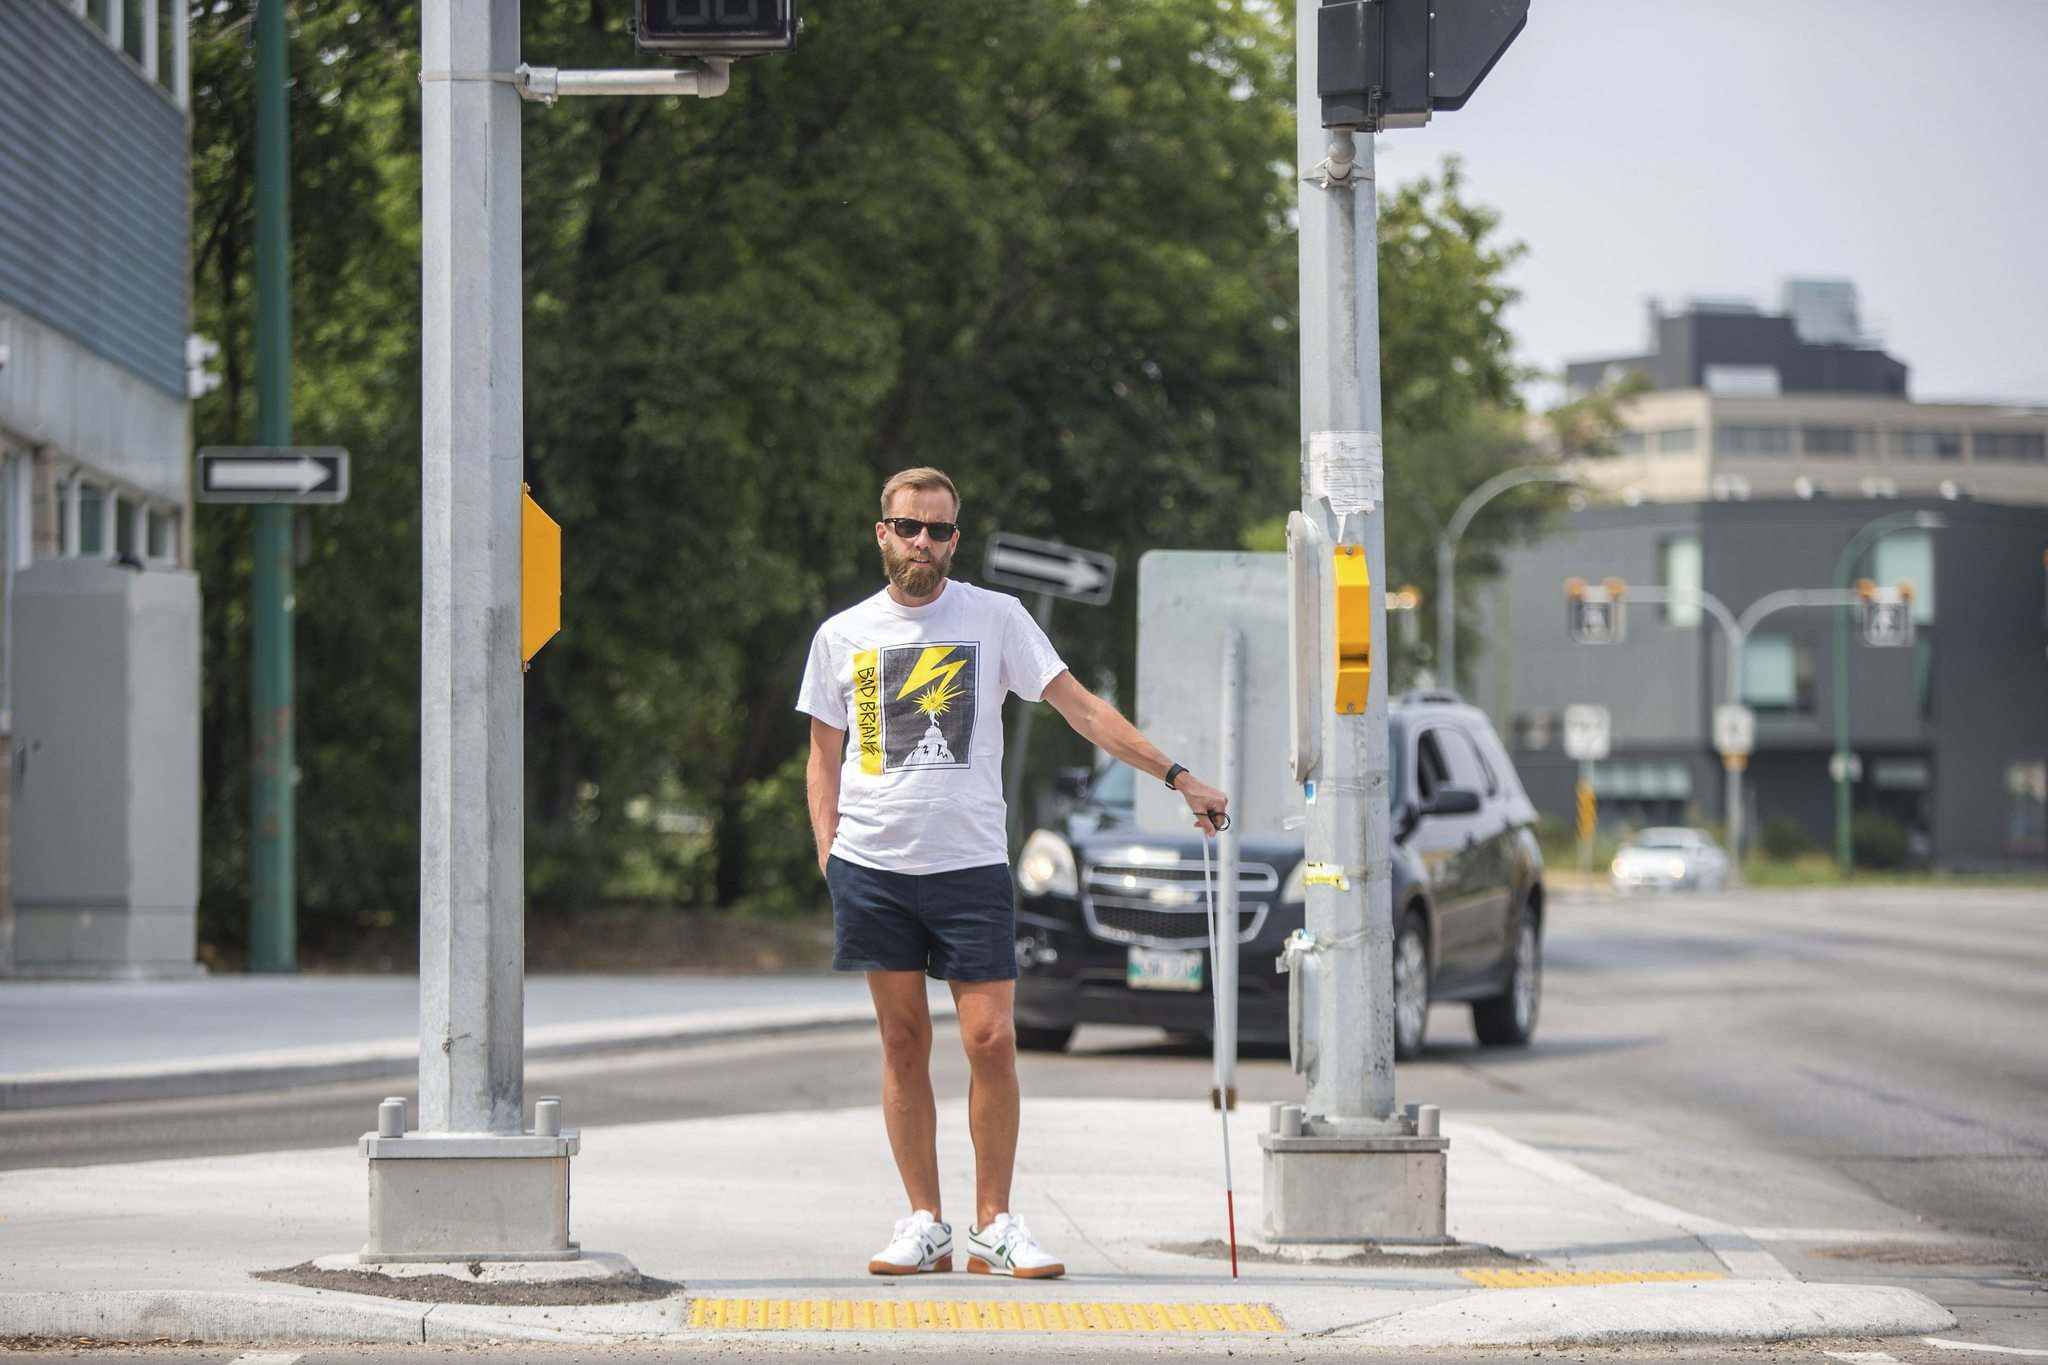 Tyler Sneesby says the signal at Broadway and Maryland Street has been broken for months, until he posted video of it on social media and tagged area politicians Tuesday. The signal was fixed sometime Tuesday or Wednesday. (Mikaela MacKenzie / Winnipeg Free Press)